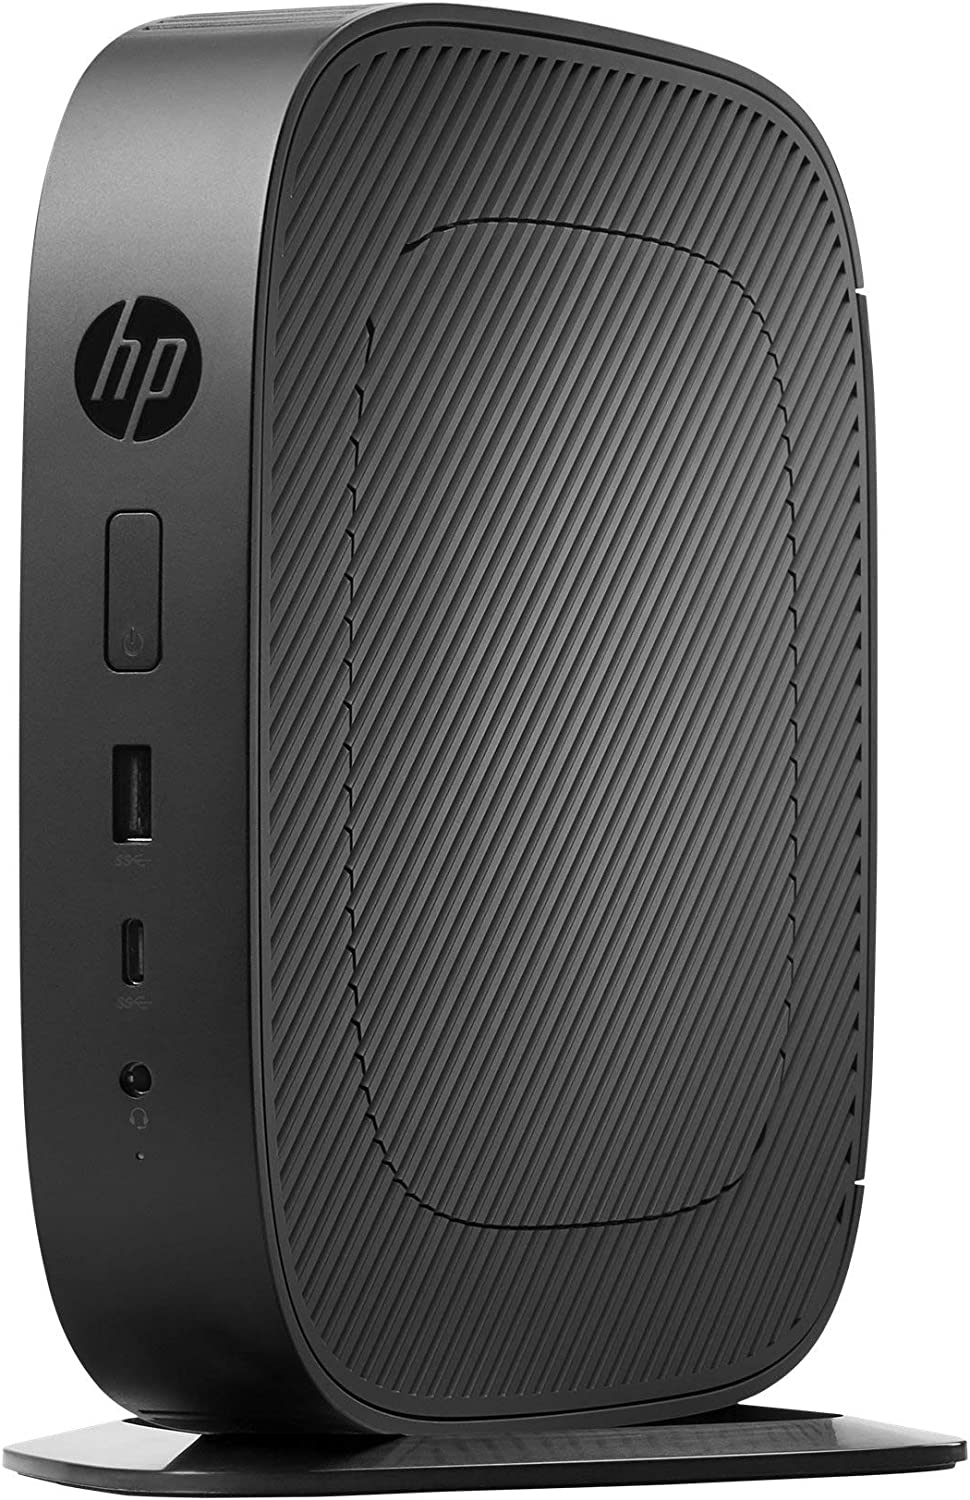 HP 3JJ47UT#ABA t530 Thin Client - Tower Desktop - 8 GB RAM - 64 GB Flash - AMD Radeon R2 - Black